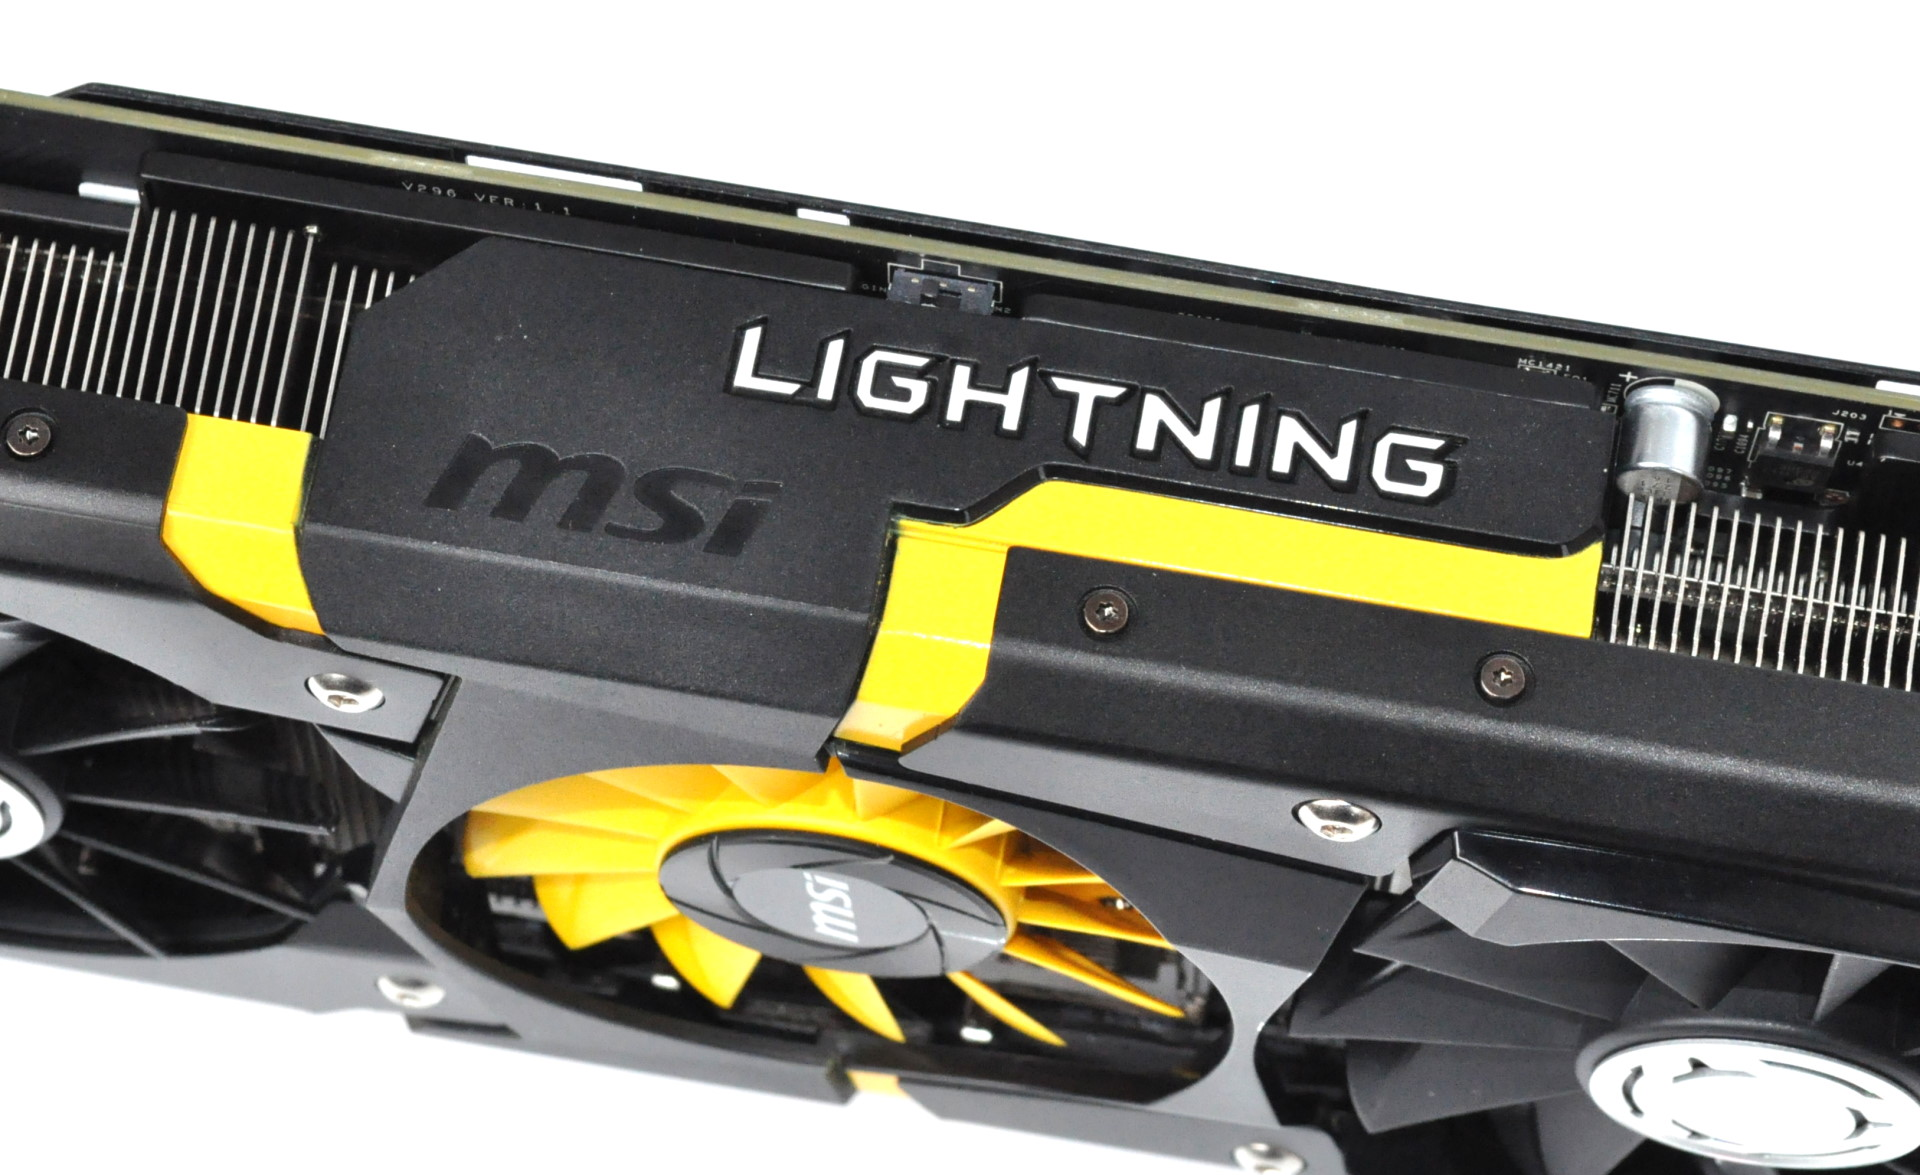 MSI GTX 980Ti Lightning in Development